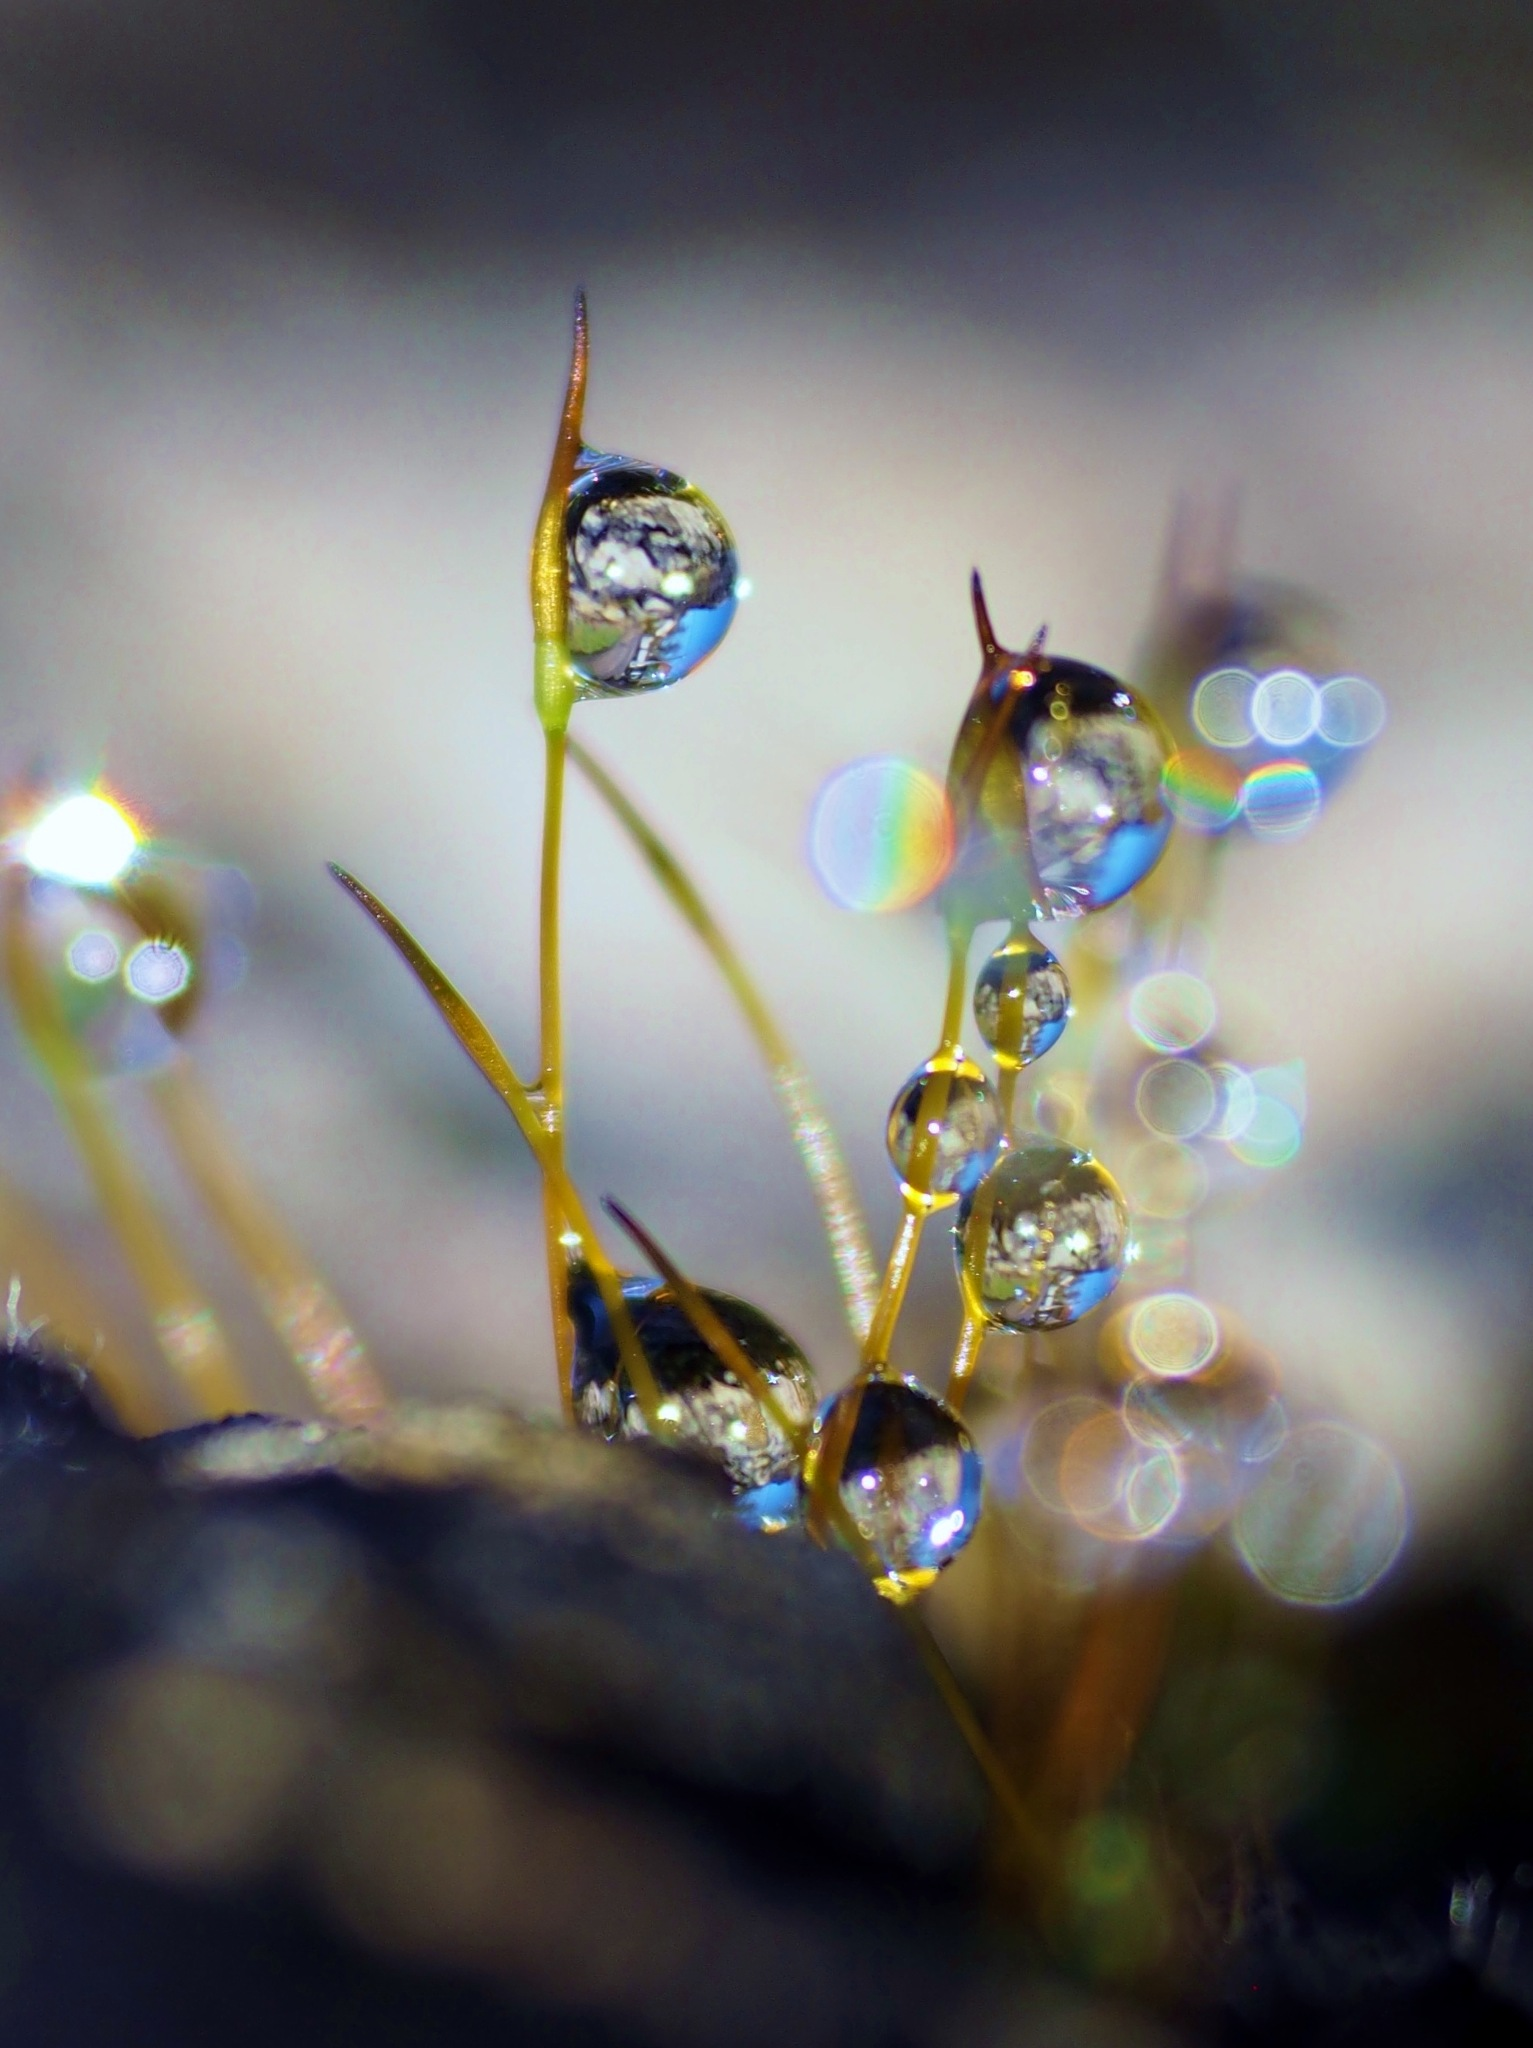 droplets  by alain michel